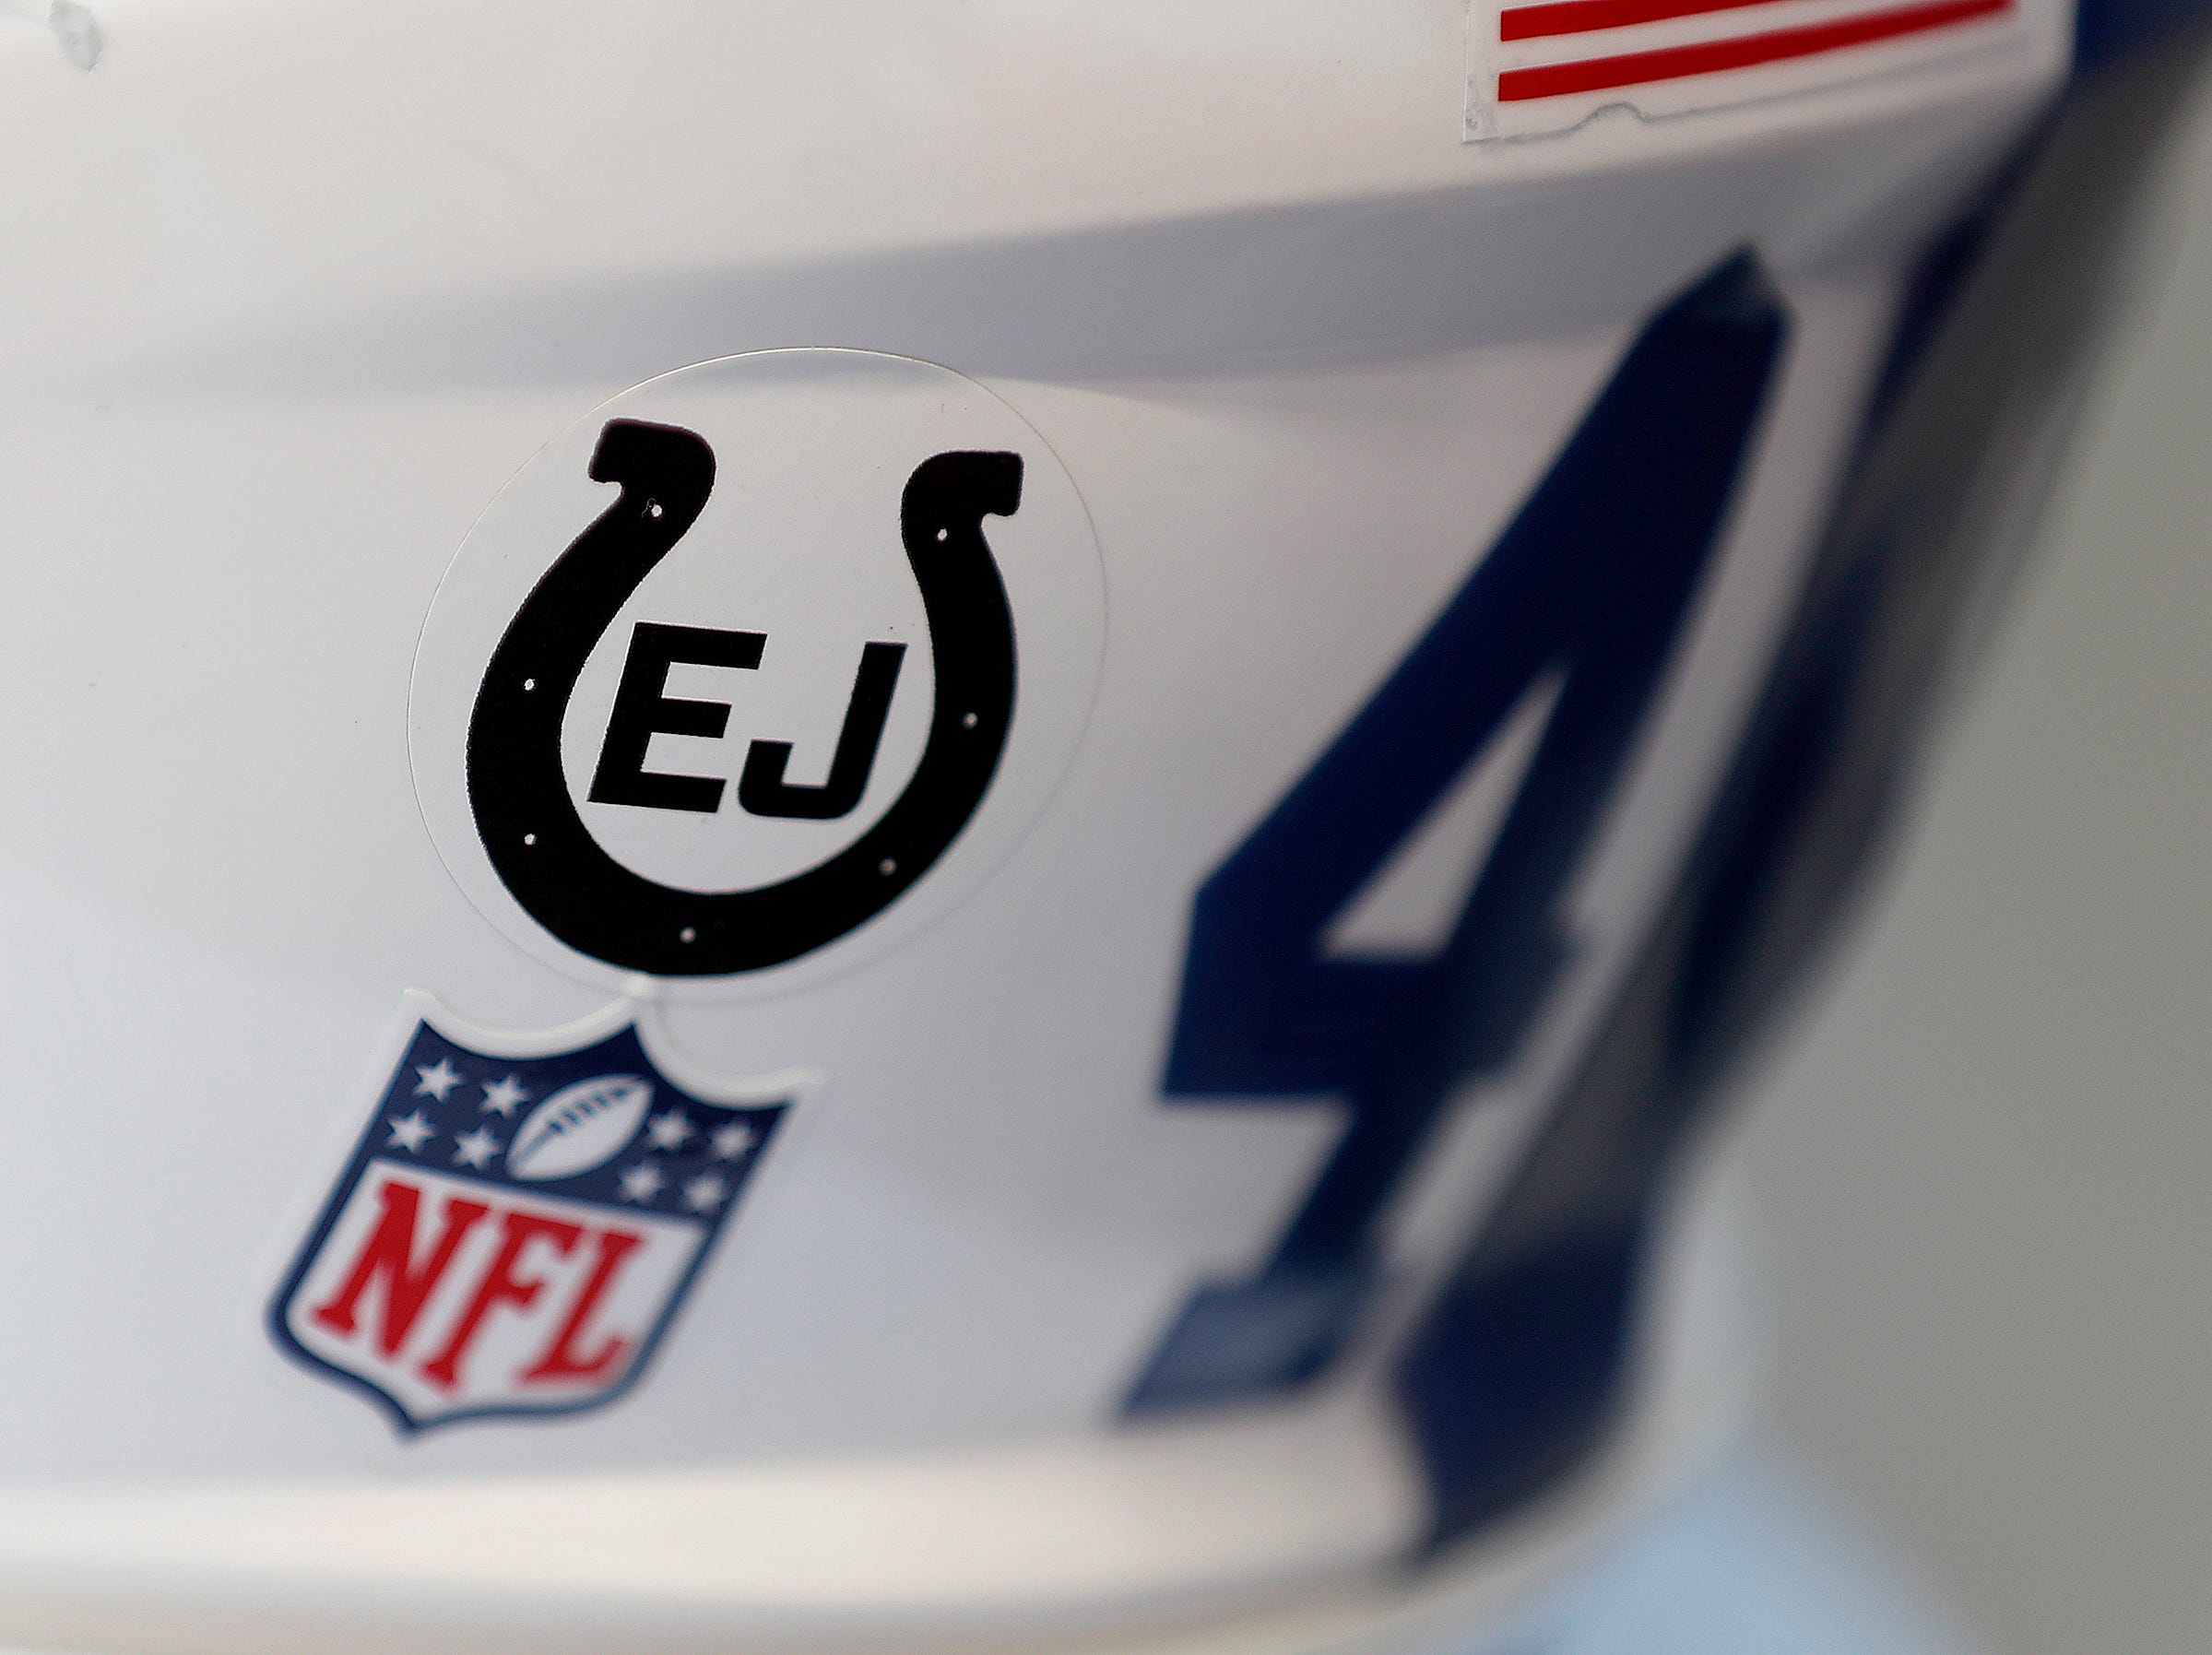 The Indianapolis Colts honored Edwin Jackson with a sticker on their helmets during their game on Sunday, Sept. 30, 2018. The Indianapolis Colts lost 37-34 in overtime to the Houston Texans.